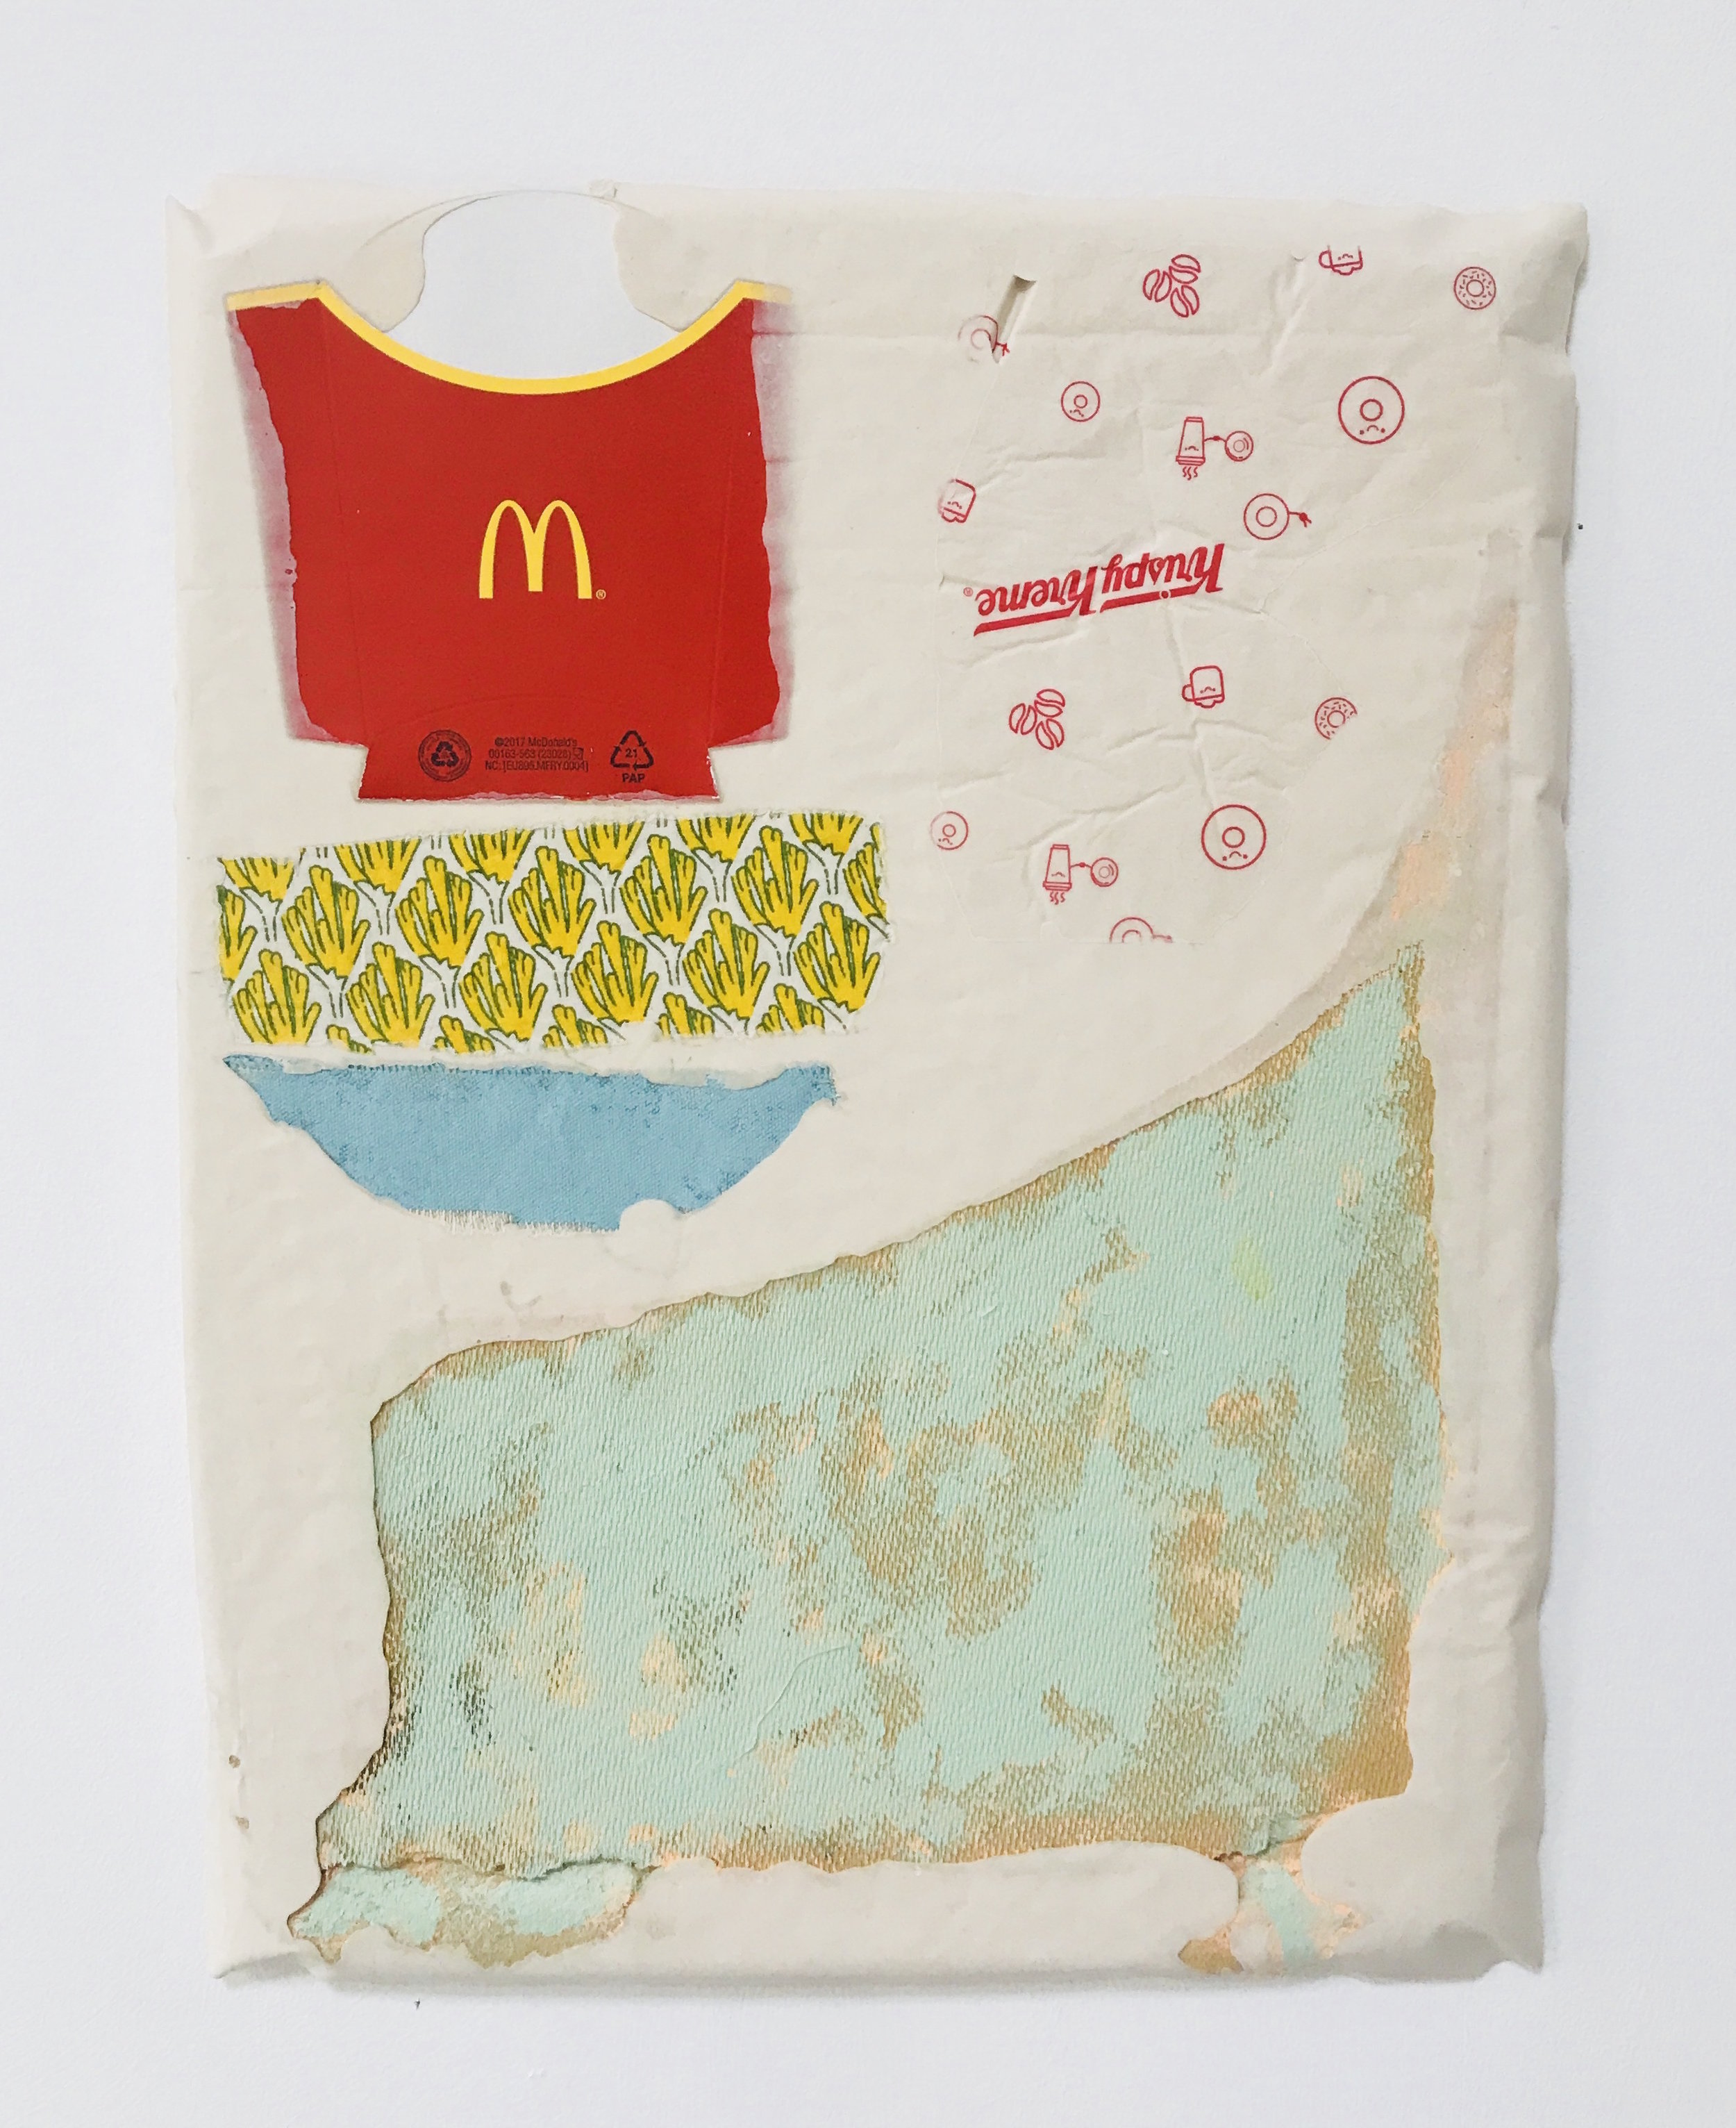 Untitled Fragment (found fabric, Krispy Kreme wrapper, canvas, wood, Mcdonalds chip packet) | Composite and Mixed Media | 42 x 32 cm